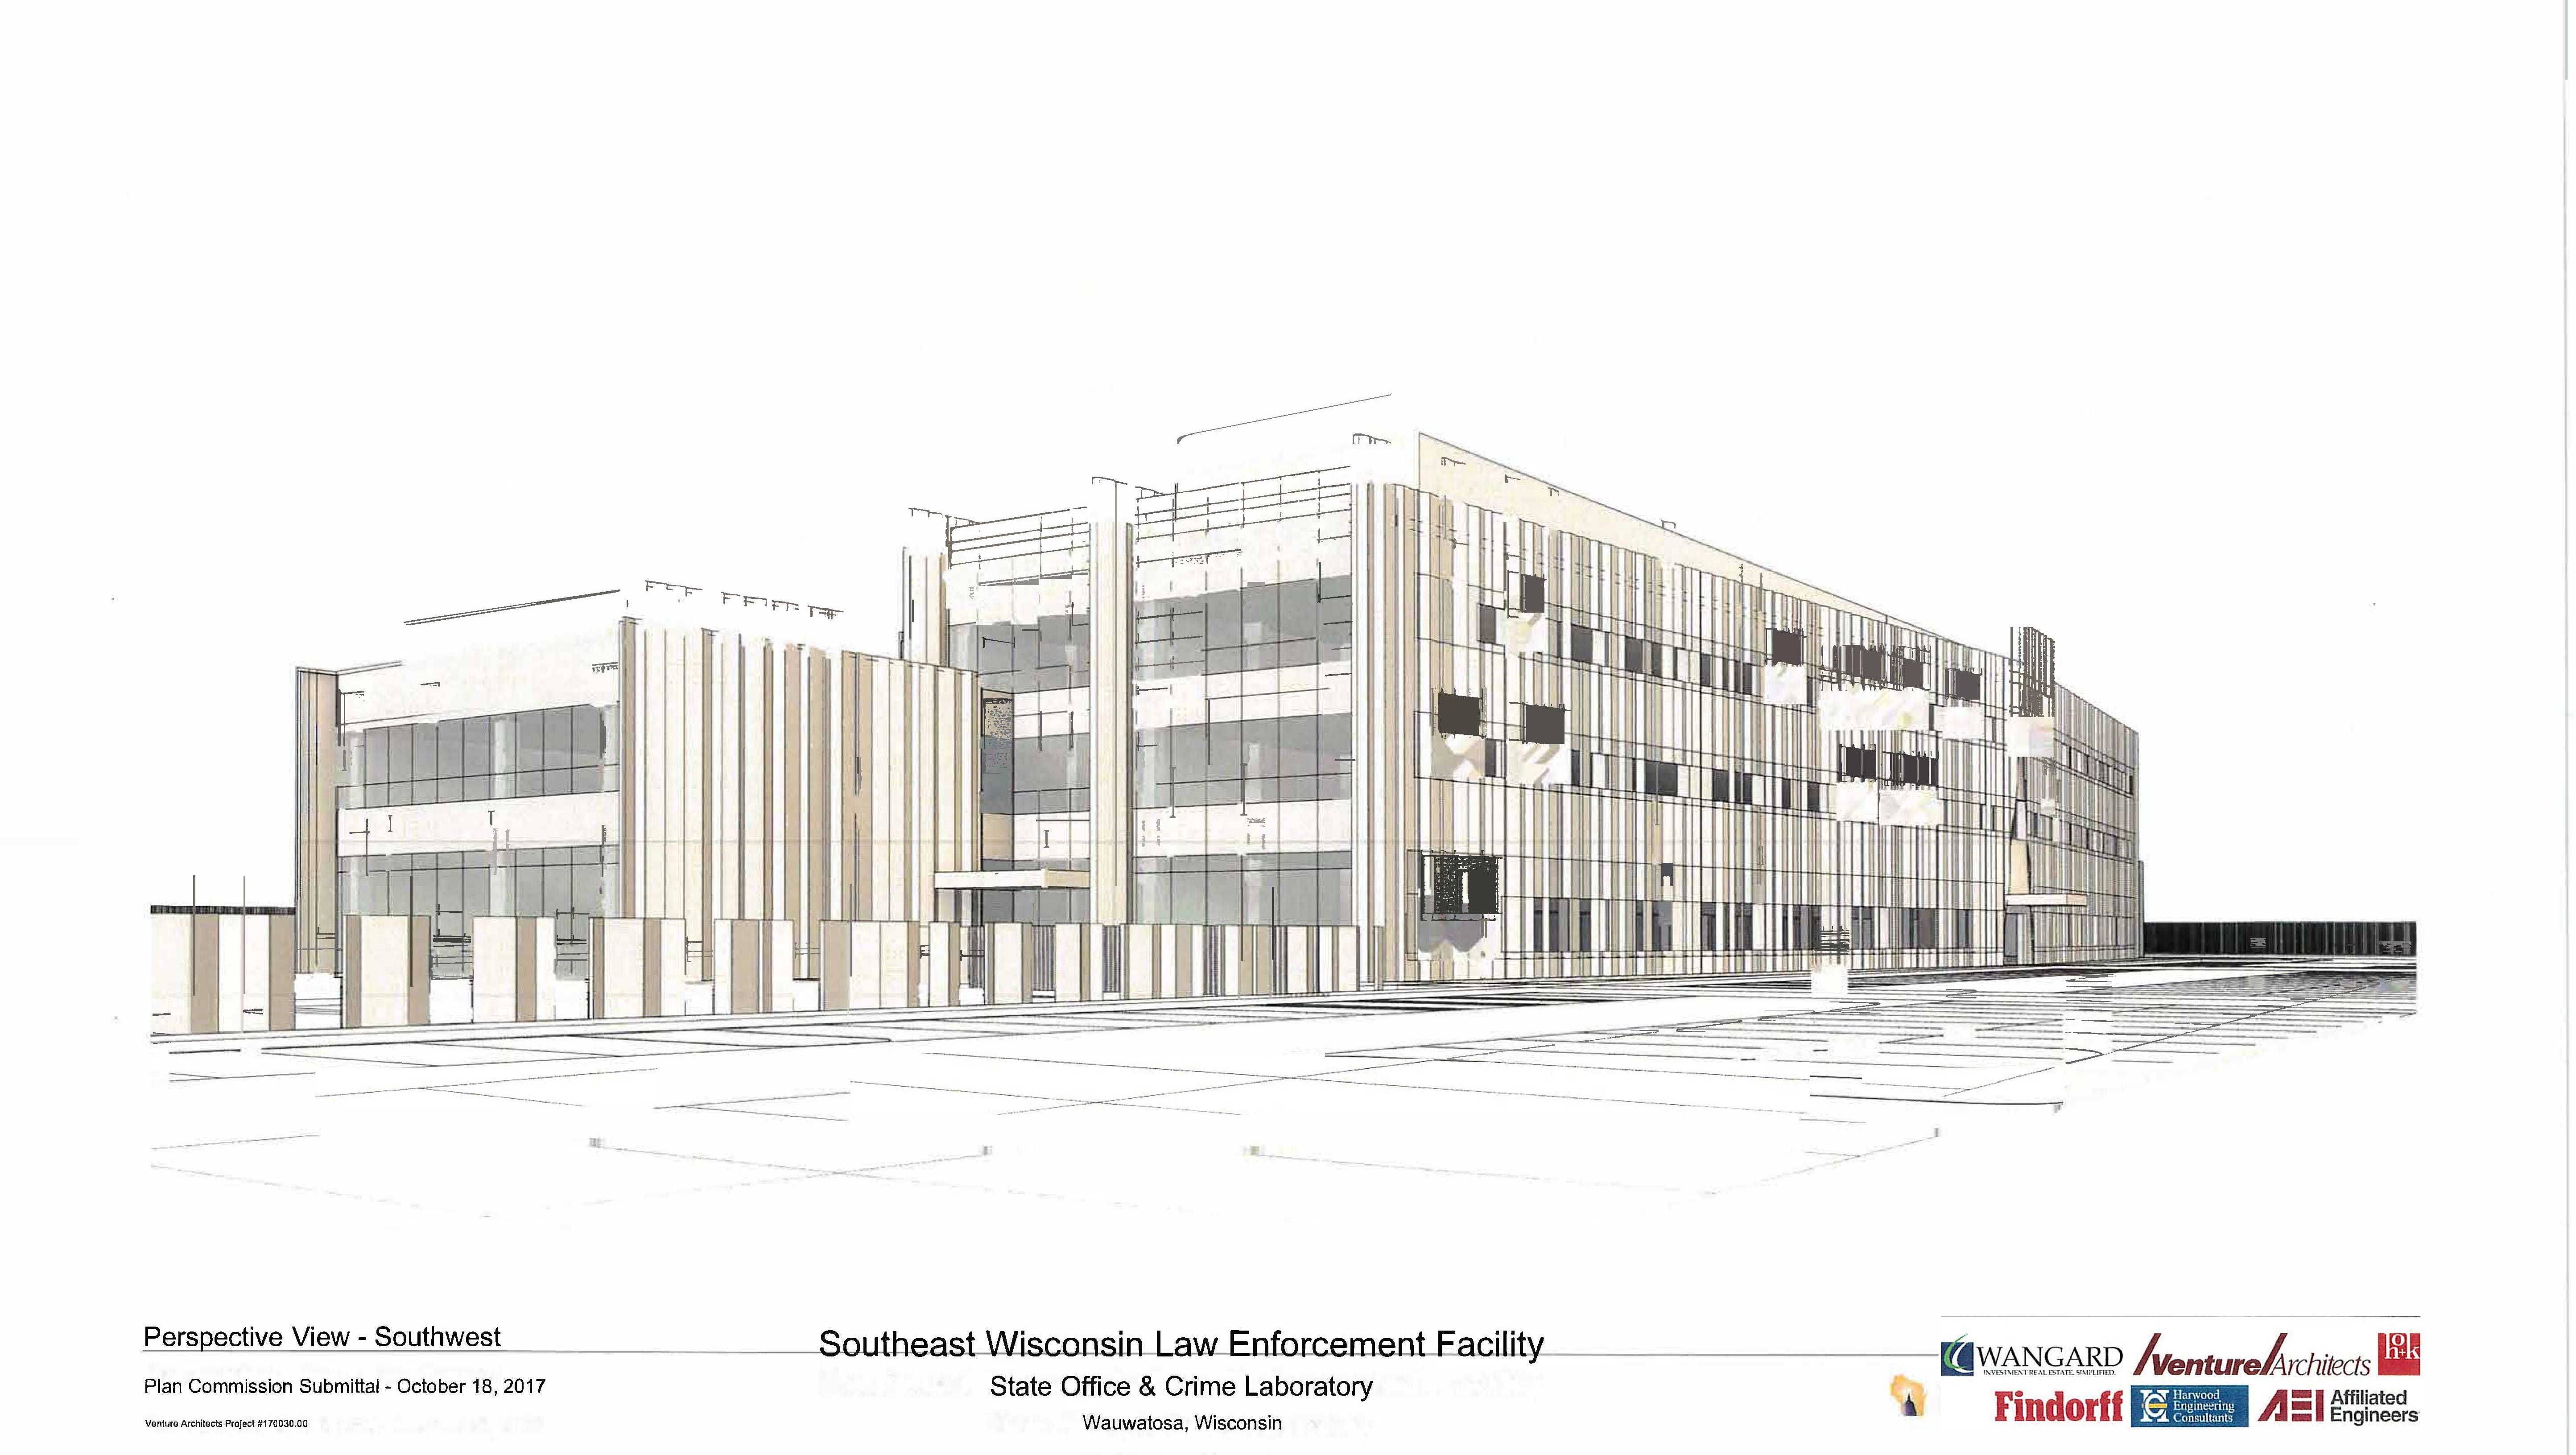 State Crime Lab Proposal Gets Approval From Wauwatosa Plan Commission